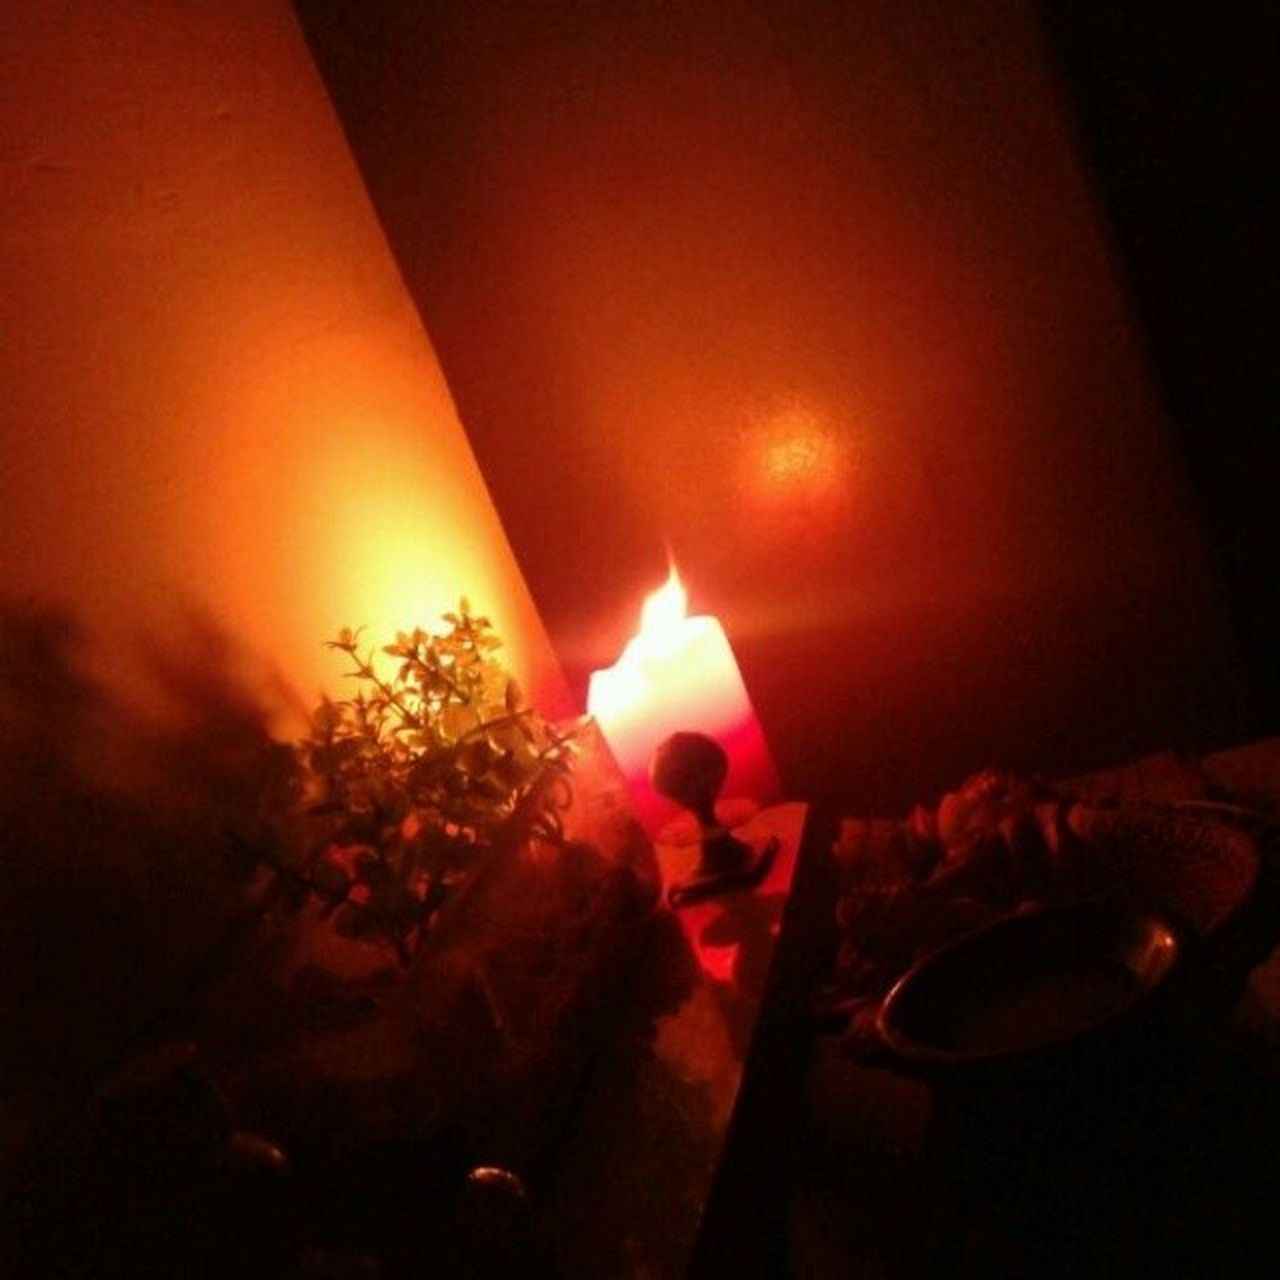 Aura and Agani Lights Red Candels Fire Mycrib Cosy @_milin